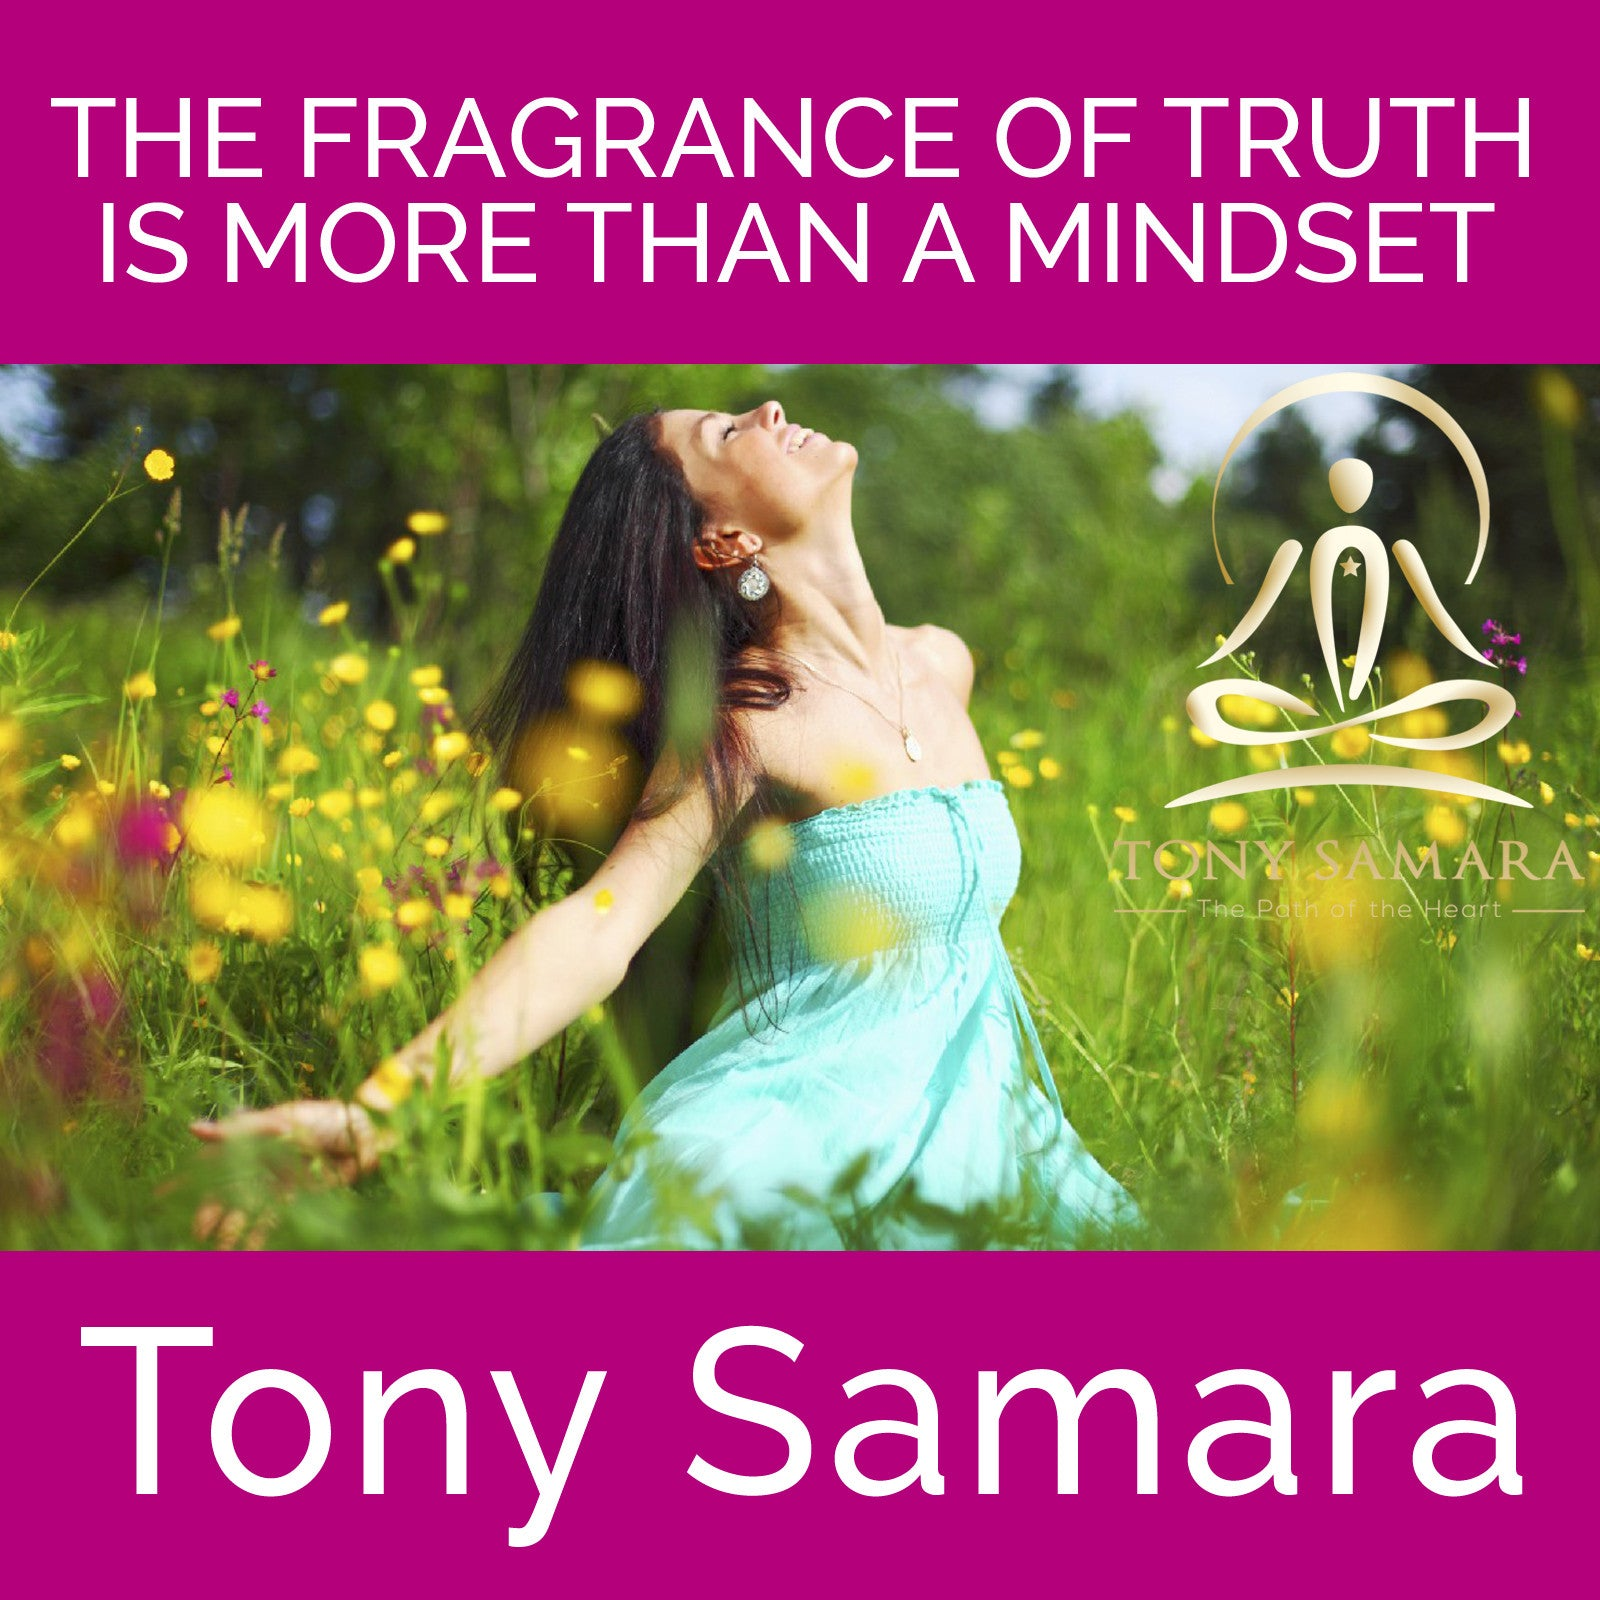 The Fragrance of Truth is More Than a Mindset (MP3 Audio Download) - Tony Samara Meditation